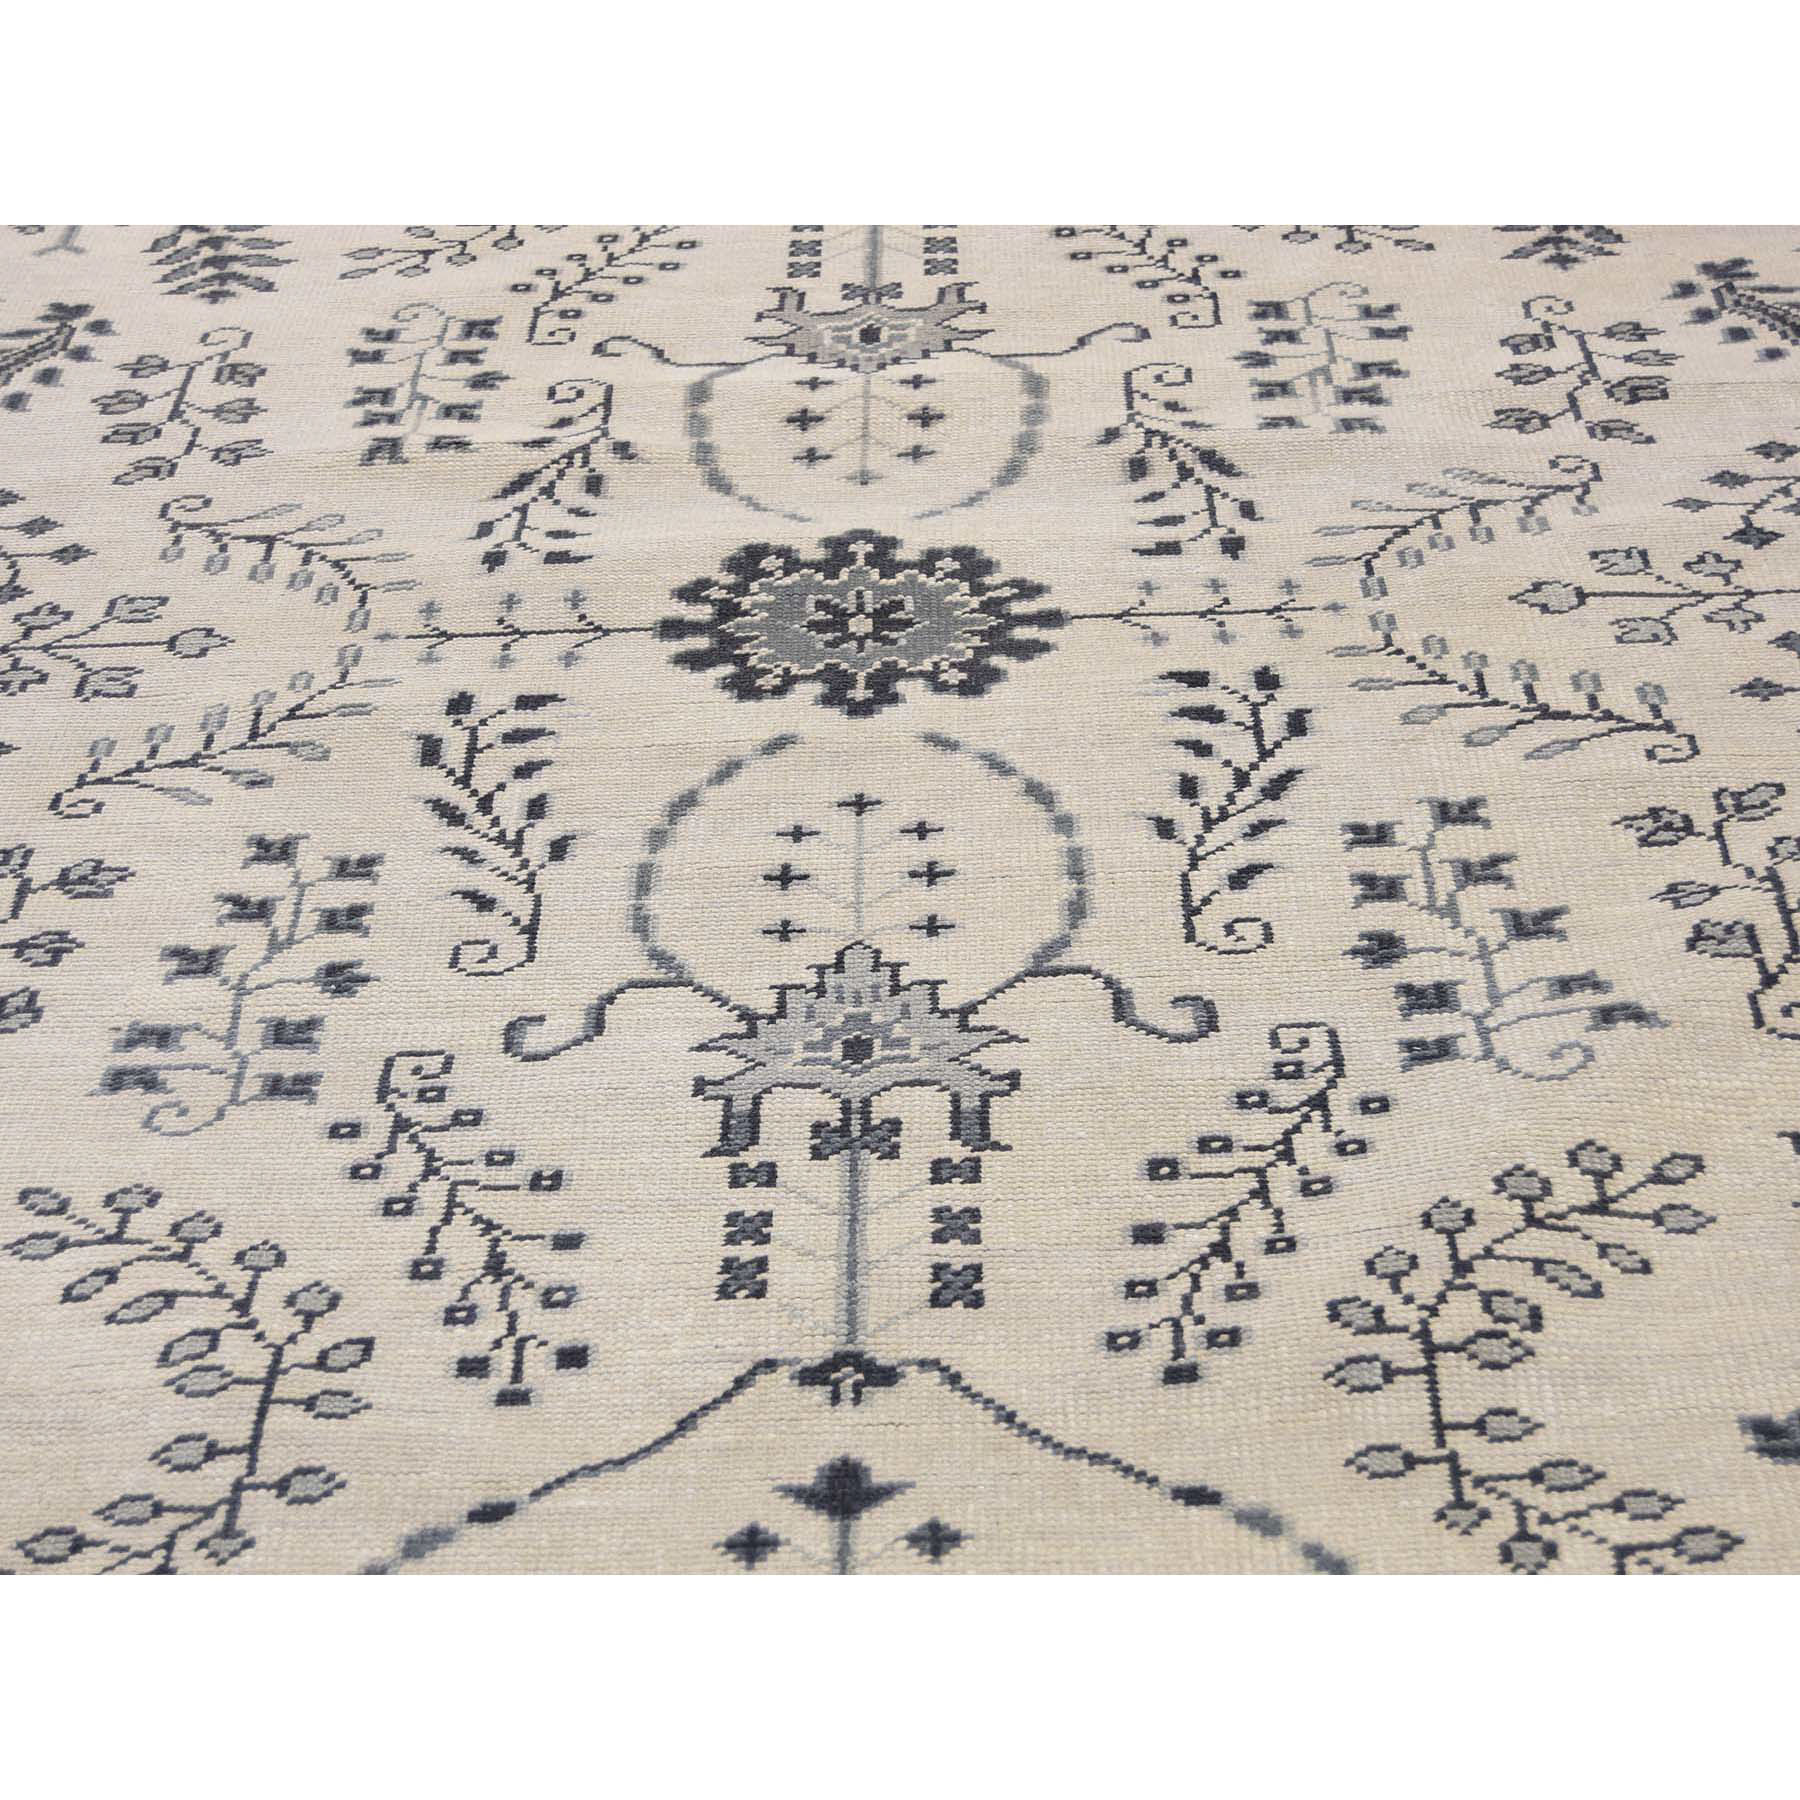 8'x10' Ivory Turkish Knot Oushak Hand-Knotted Pure Wool Oriental Rug